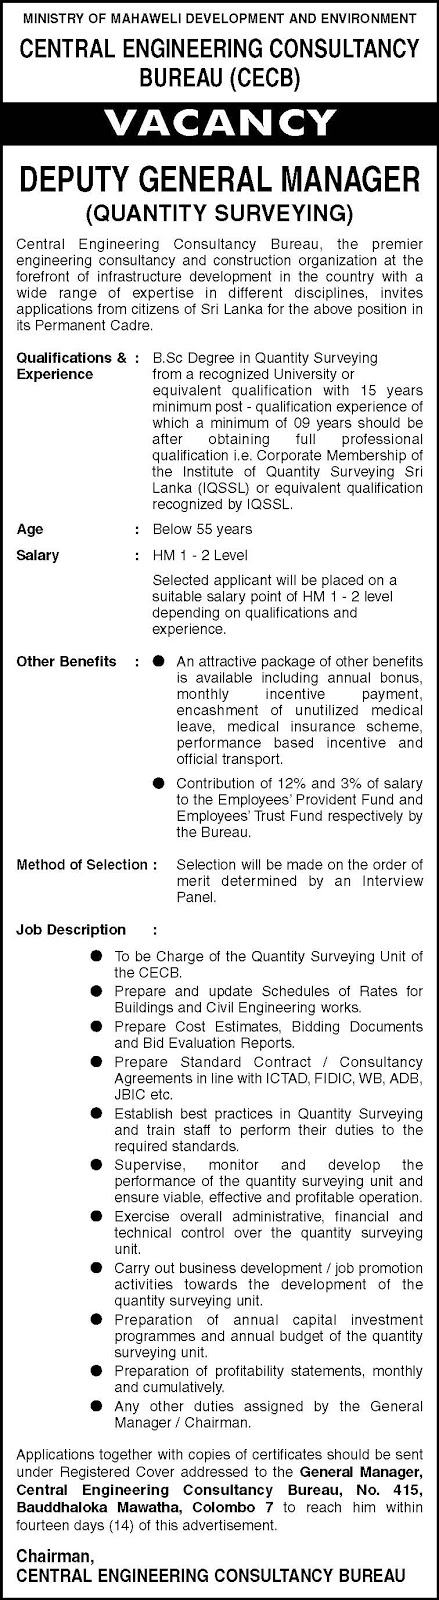 Vacancies –Deputy General Manager - Central Engineering Consultancy Bureau - Ministry of Mahaweli Development and Environment